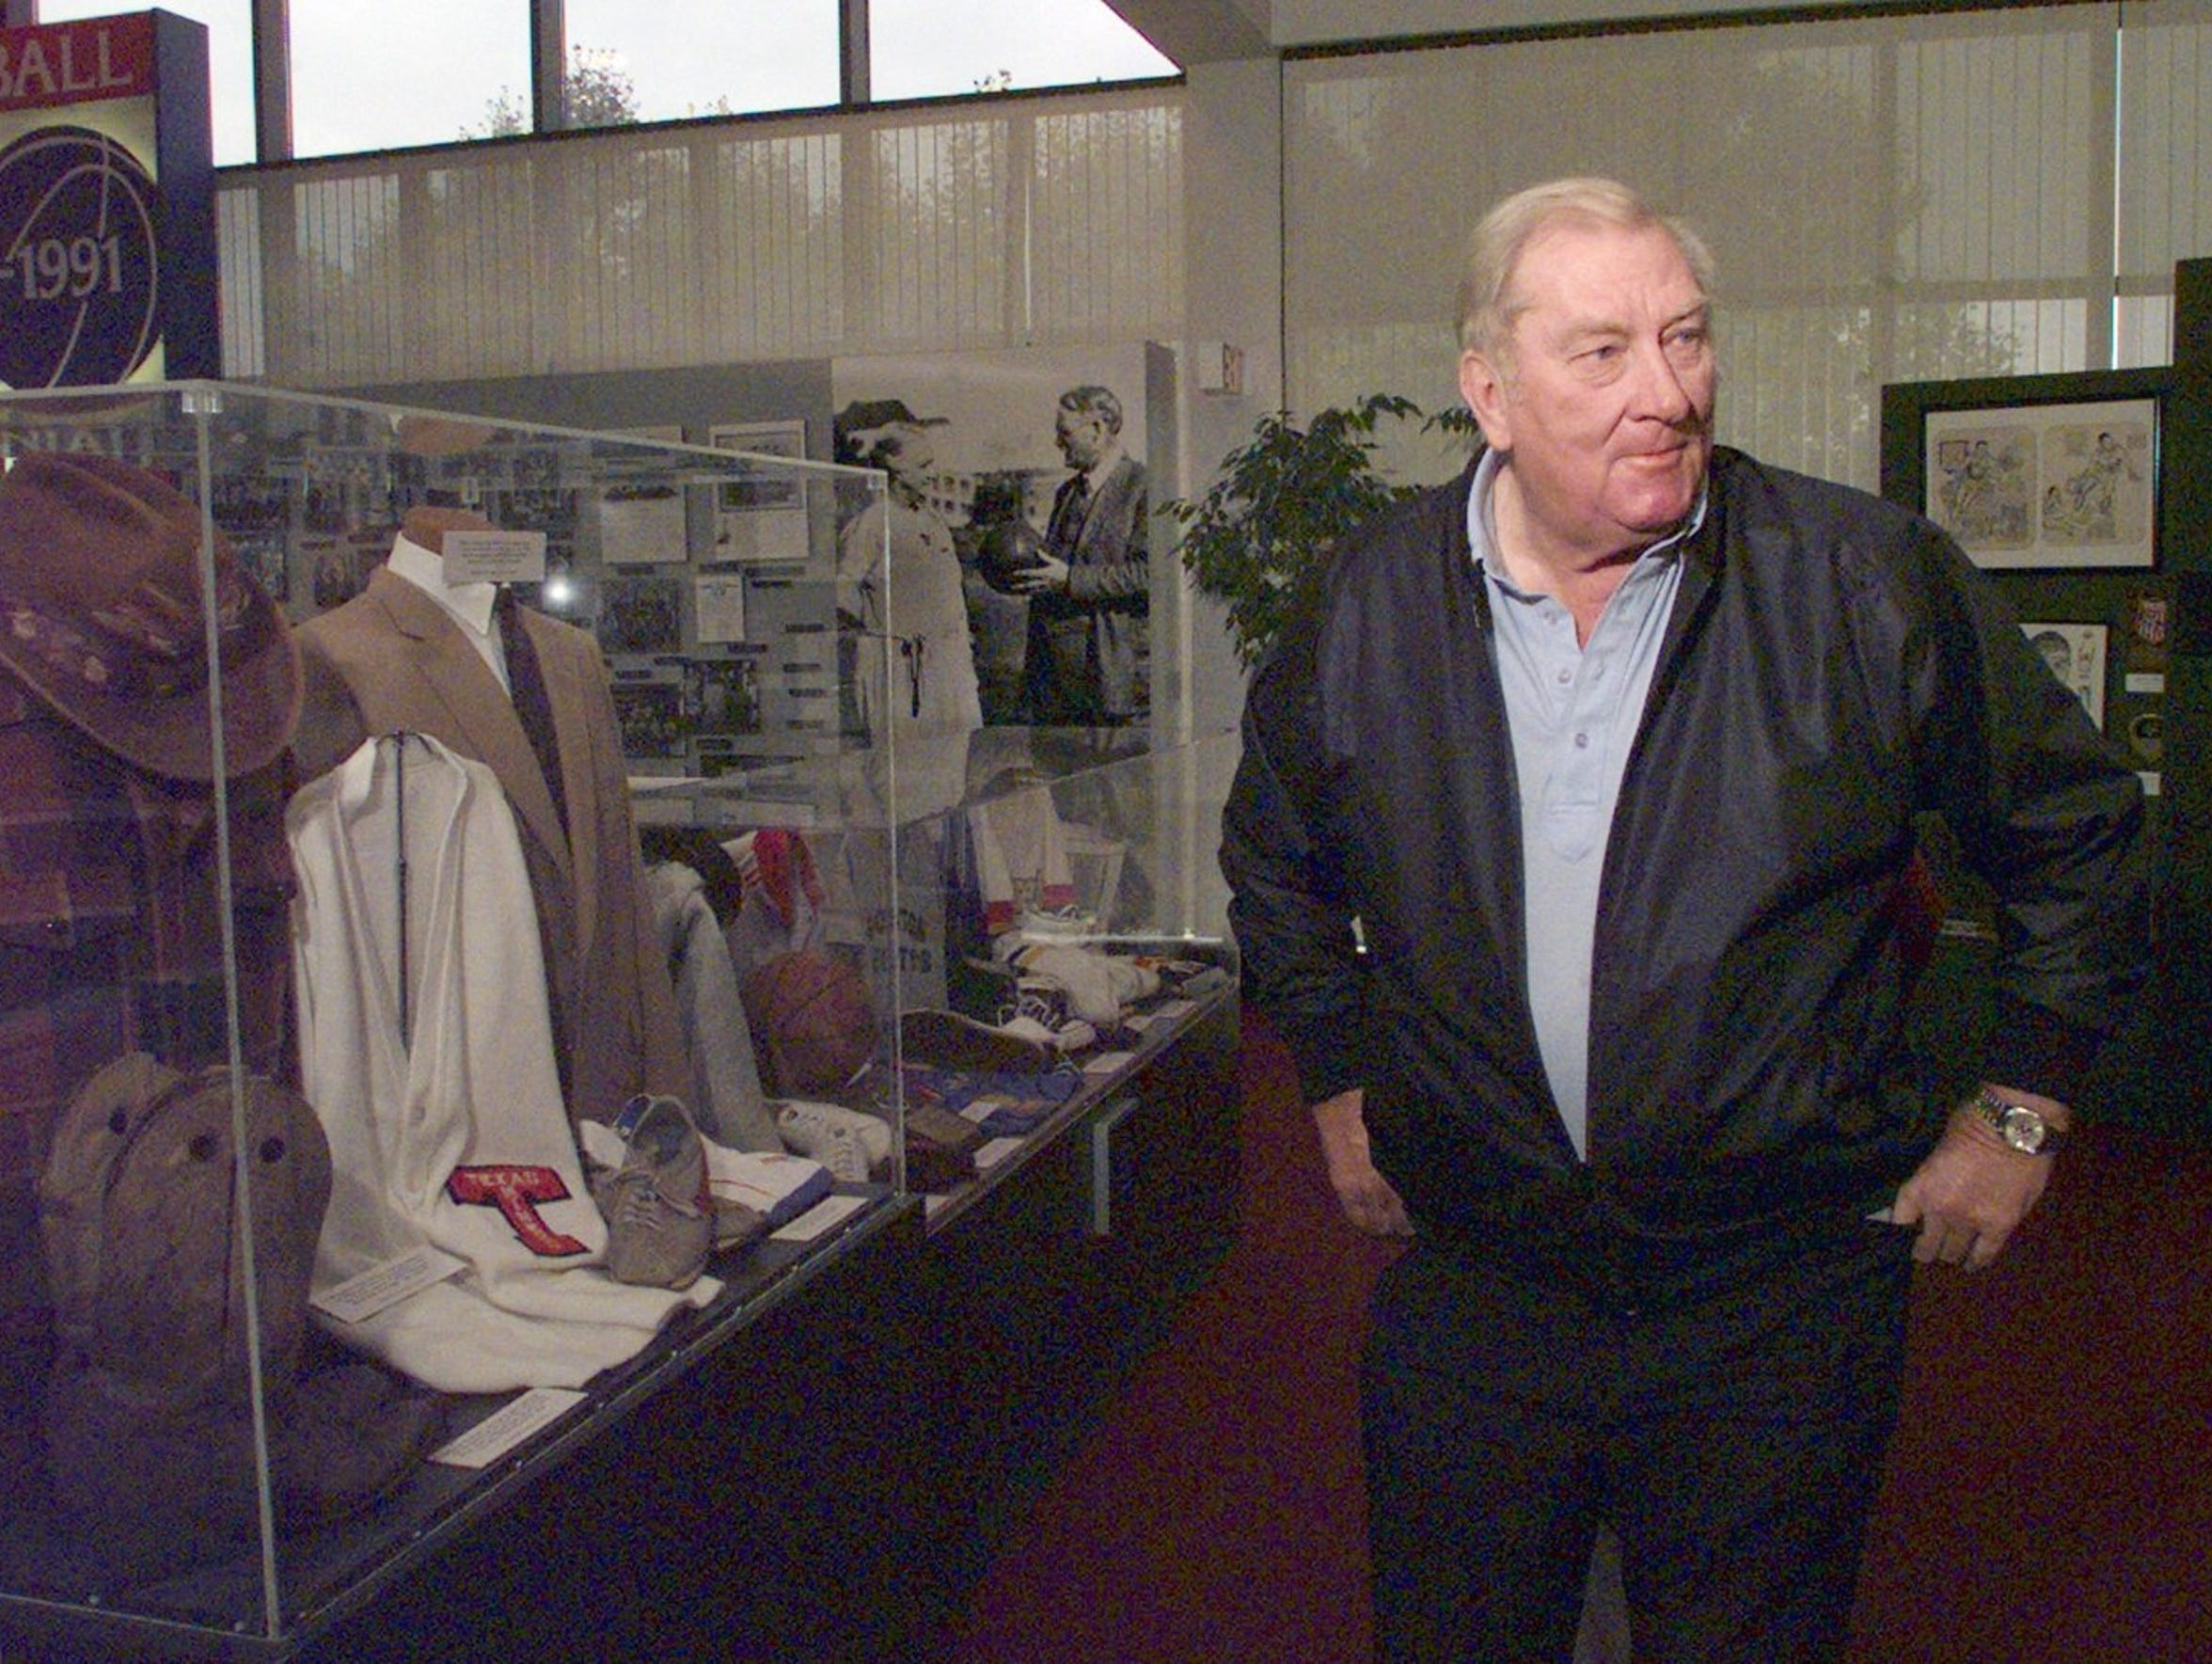 Don Haskins smiles as he inspects his display at the